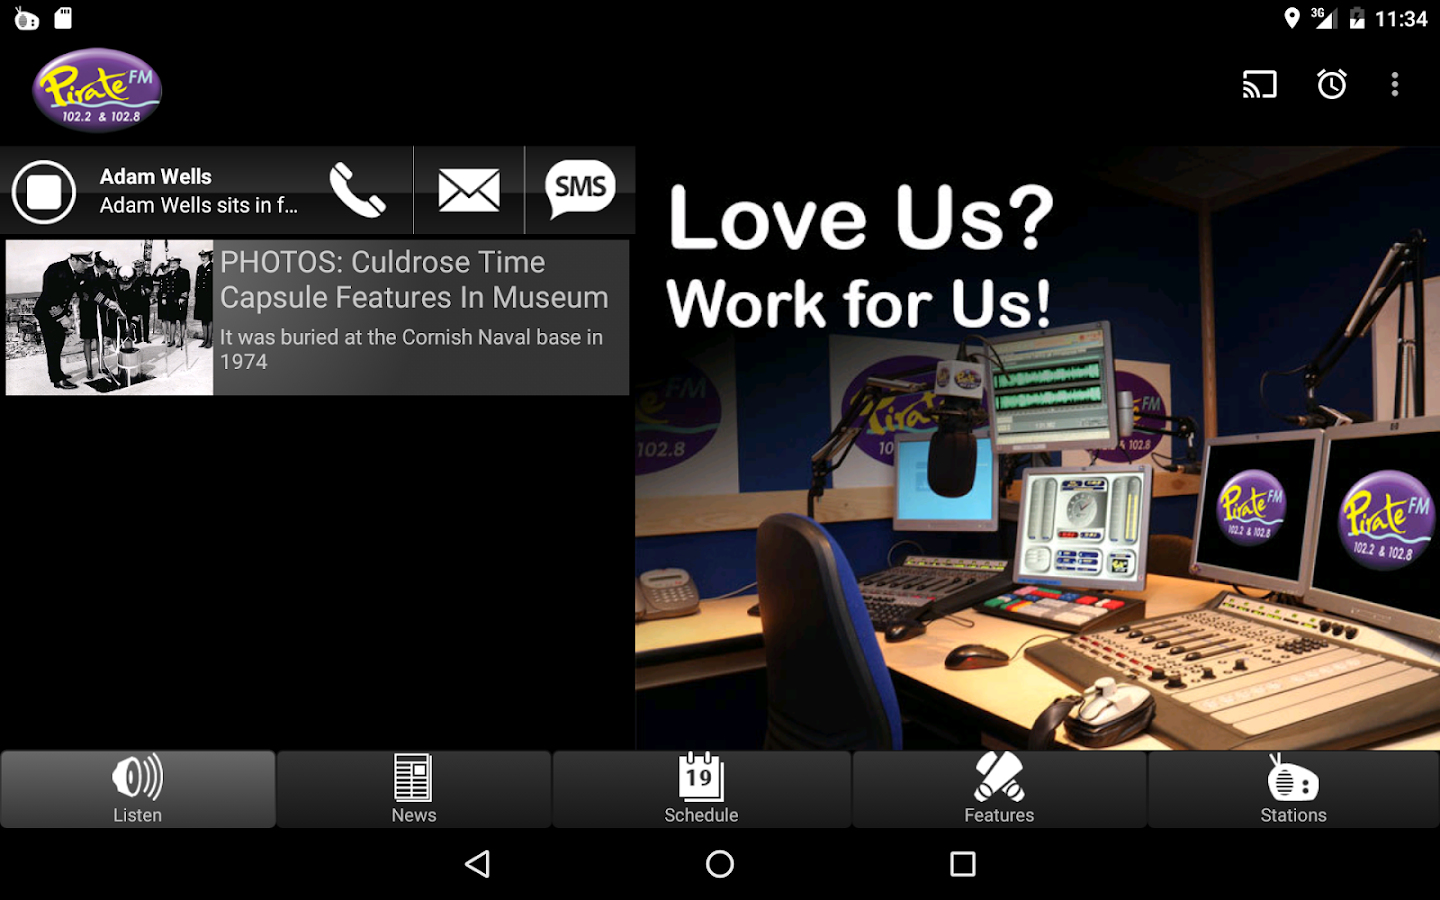 Pirate FM Android Apps On Google Play - Pirate museums in the us